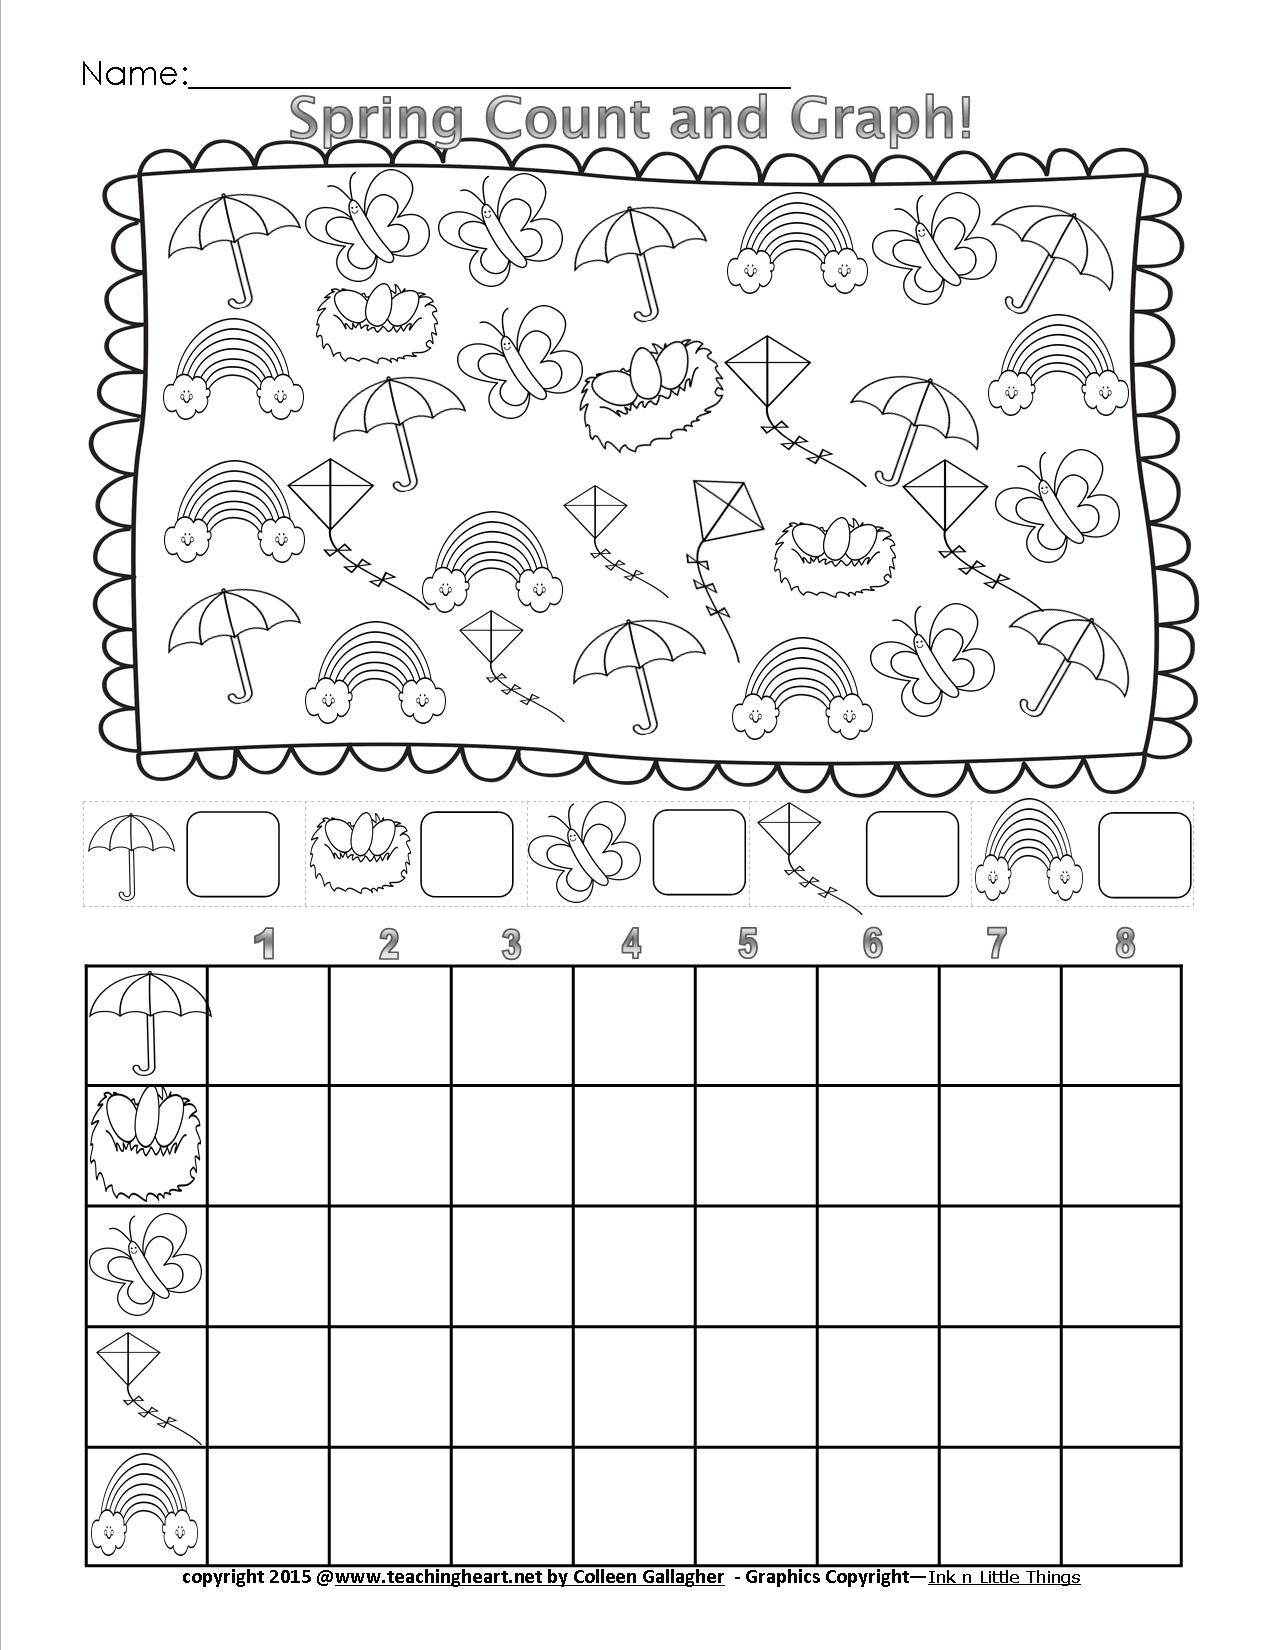 Spring Count And Graph - Free - Teaching Heart Blog Teaching Heart Blog - Free Printable Graphs For Kindergarten